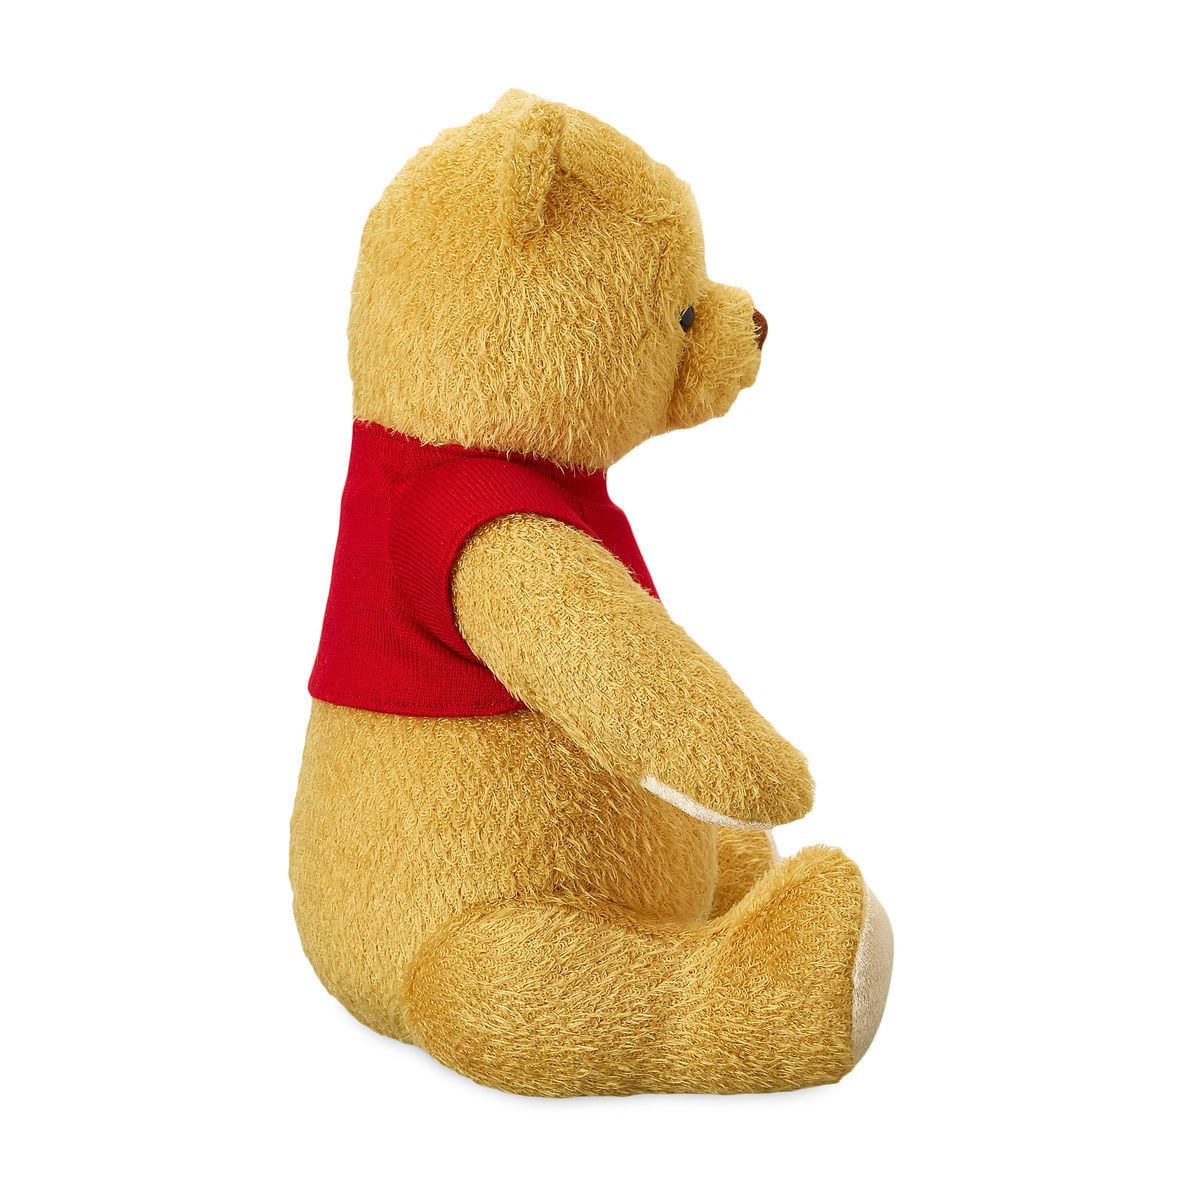 Product Image of Winnie the Pooh Plush - Christopher Robin - Medium   2 08c30b6ec174